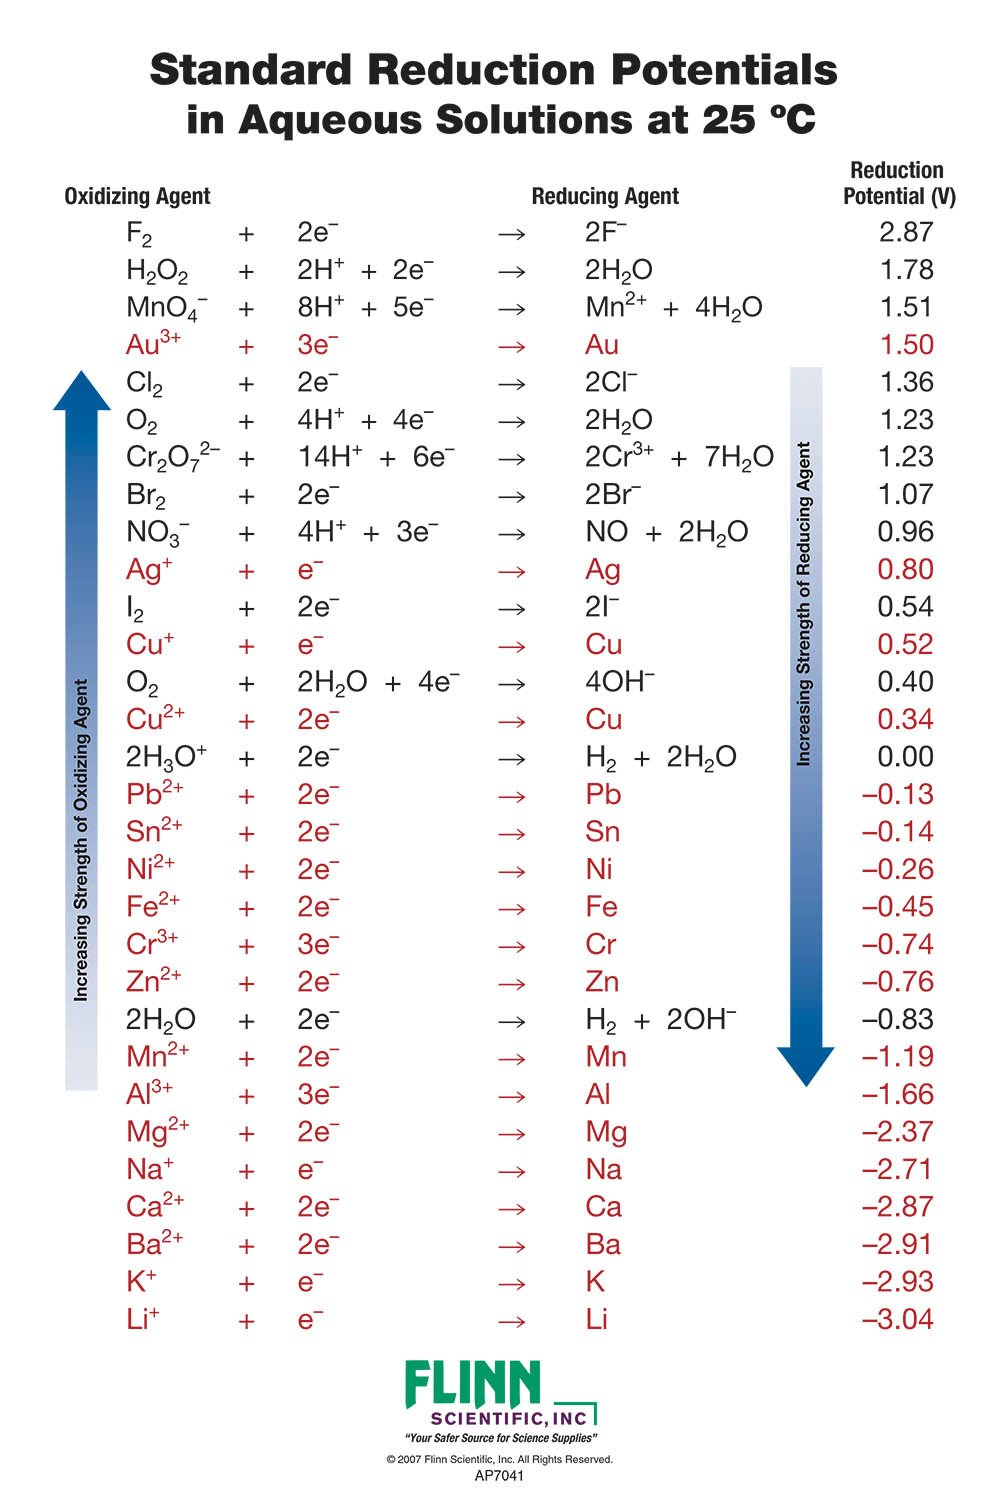 Standard Reduction Potential Charts For Chemistry